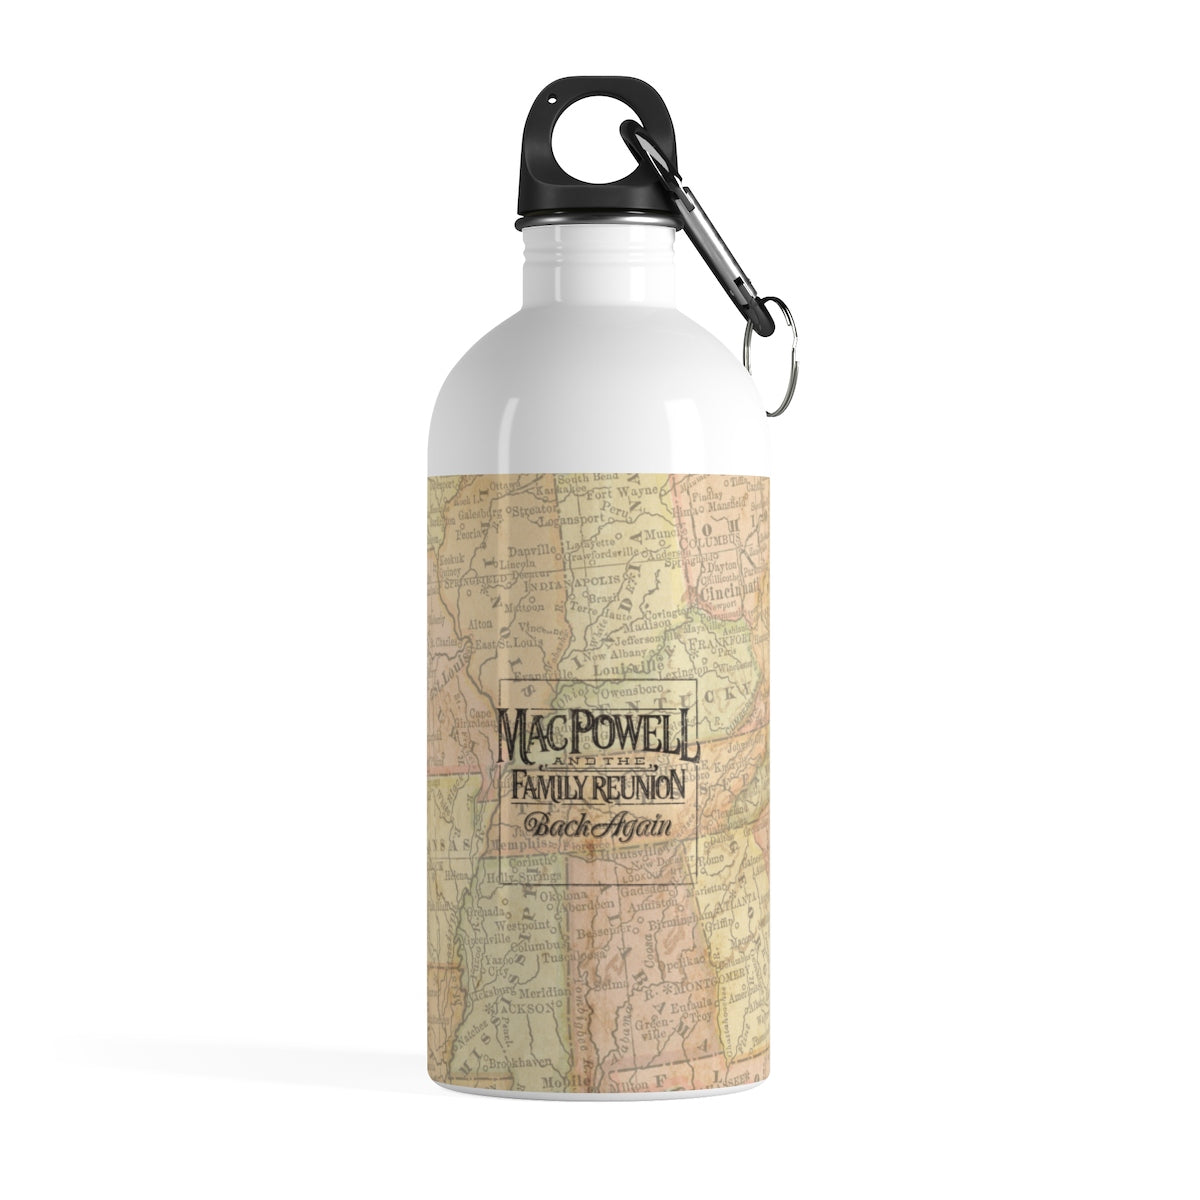 Back Again - Stainless Steel Water Bottle